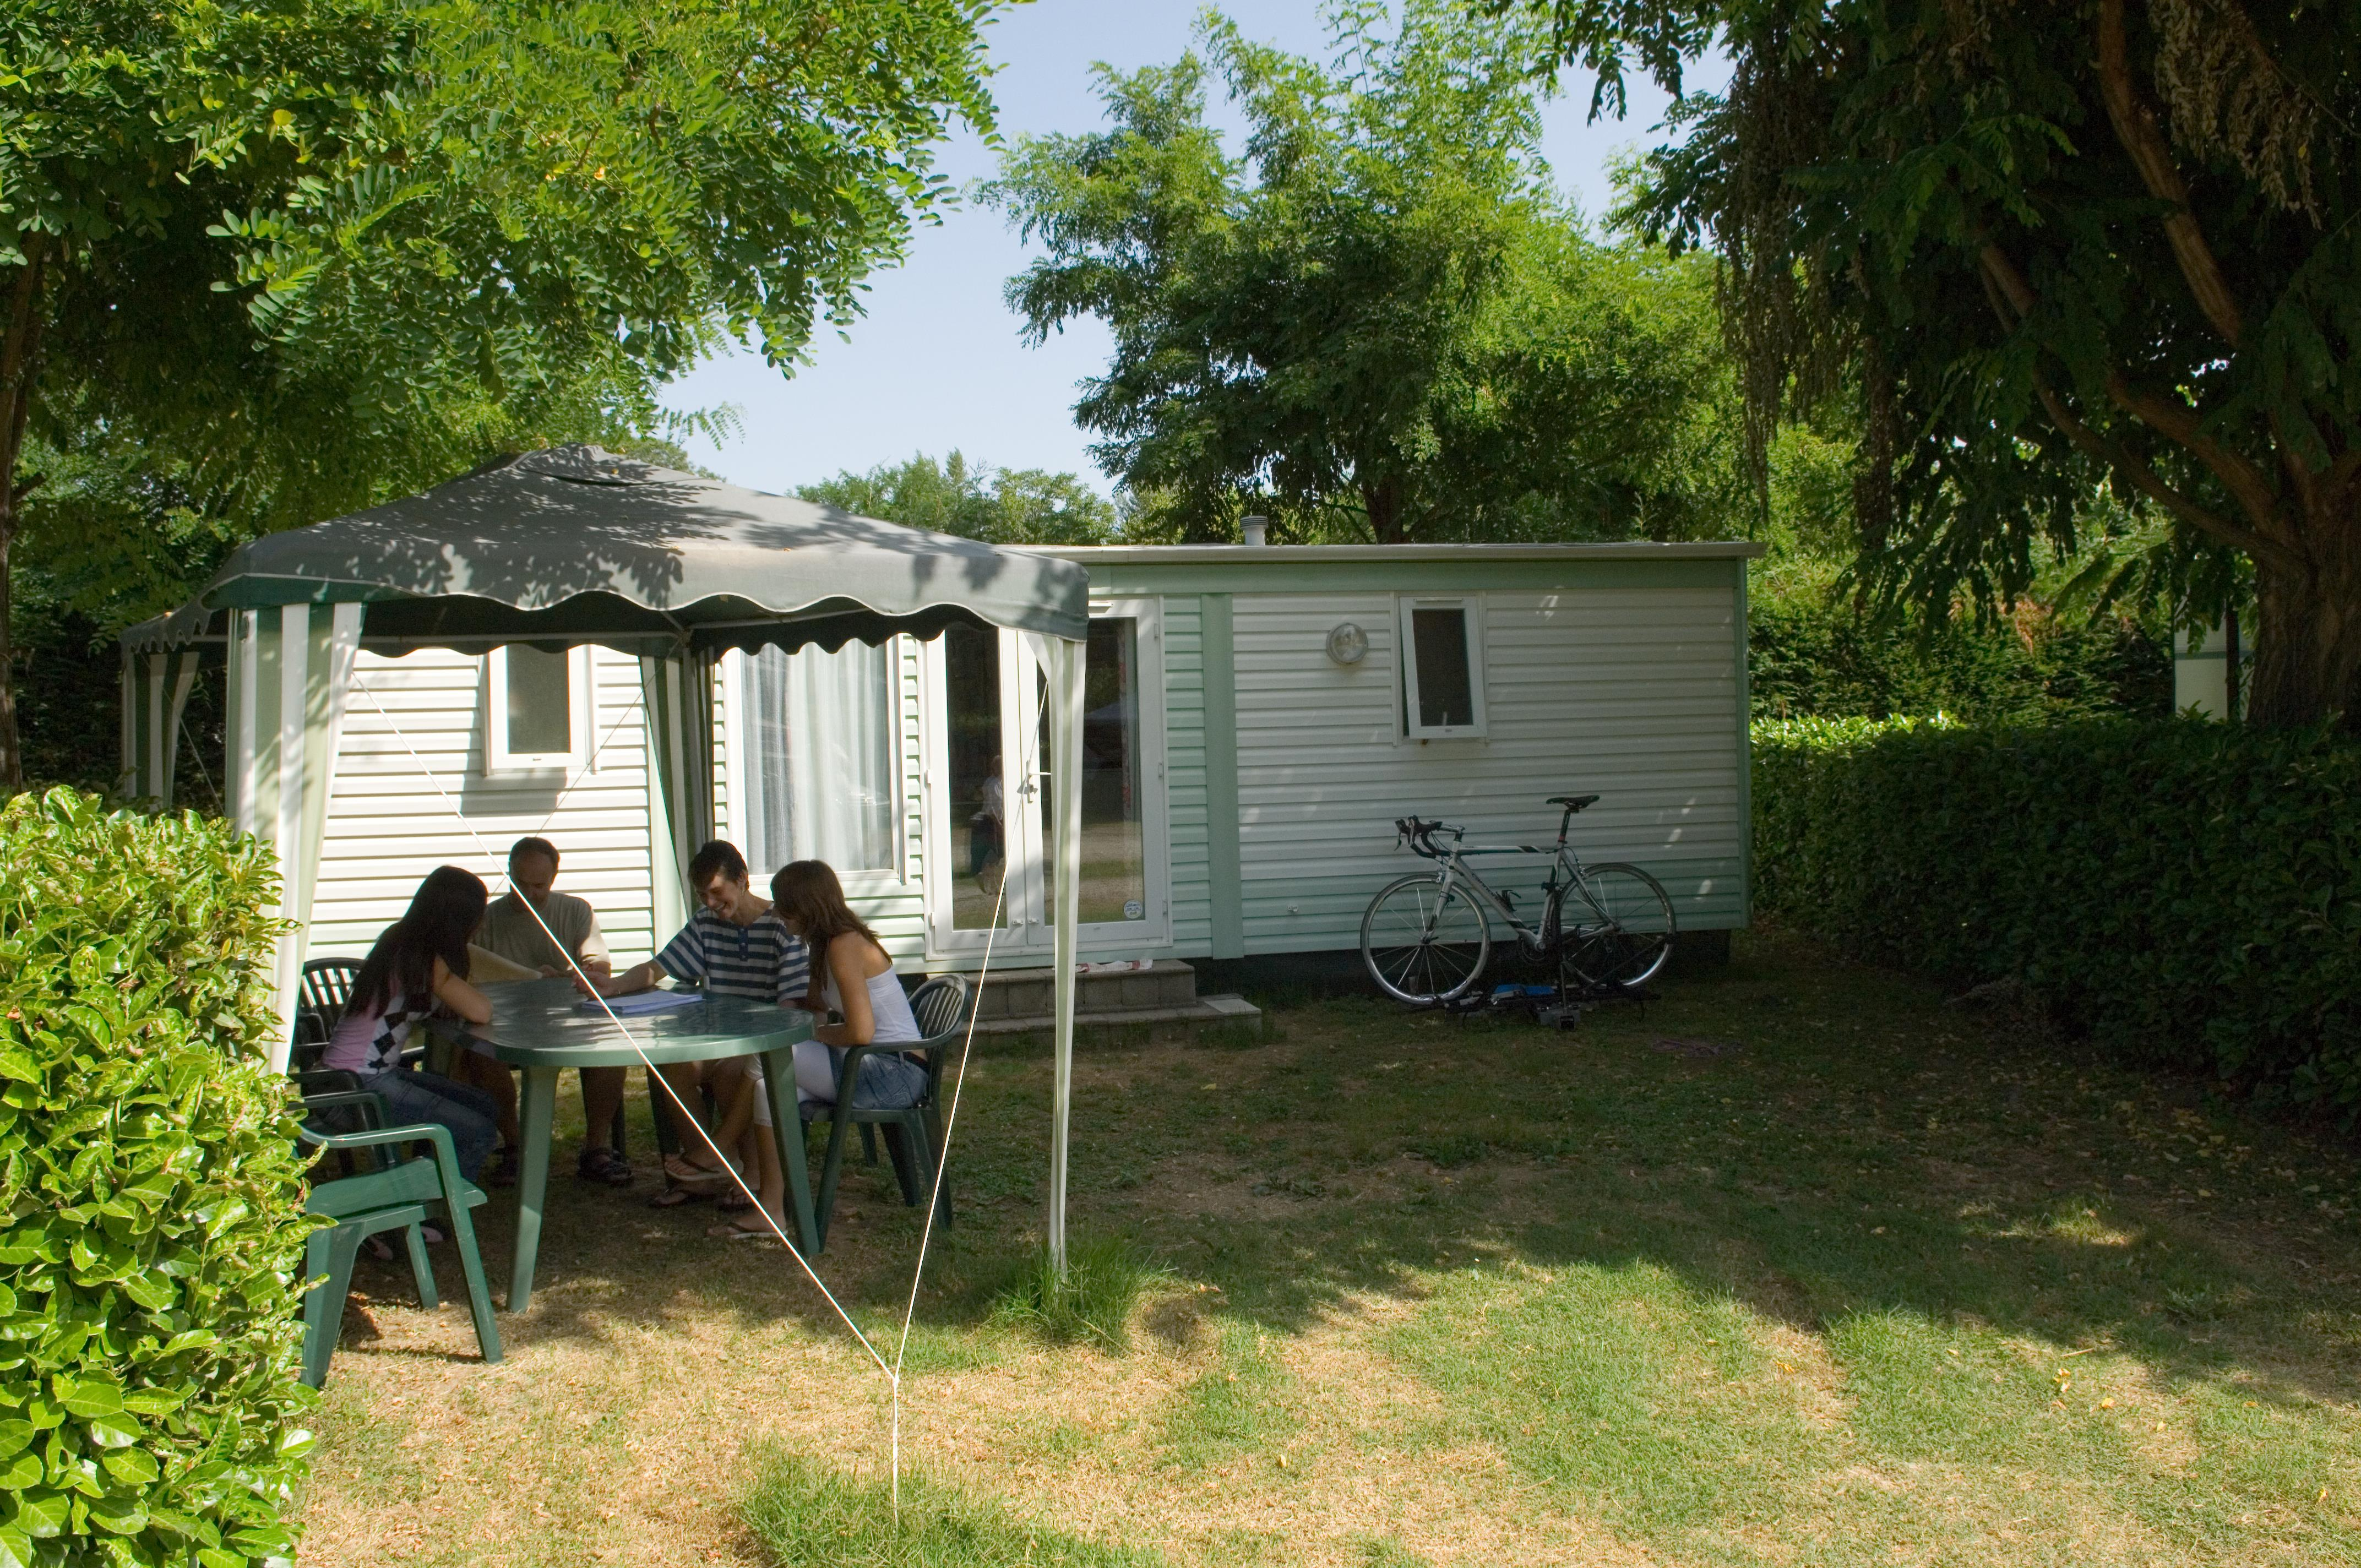 Mobile-home ECO 20m² 2 bedrooms - without sanitary